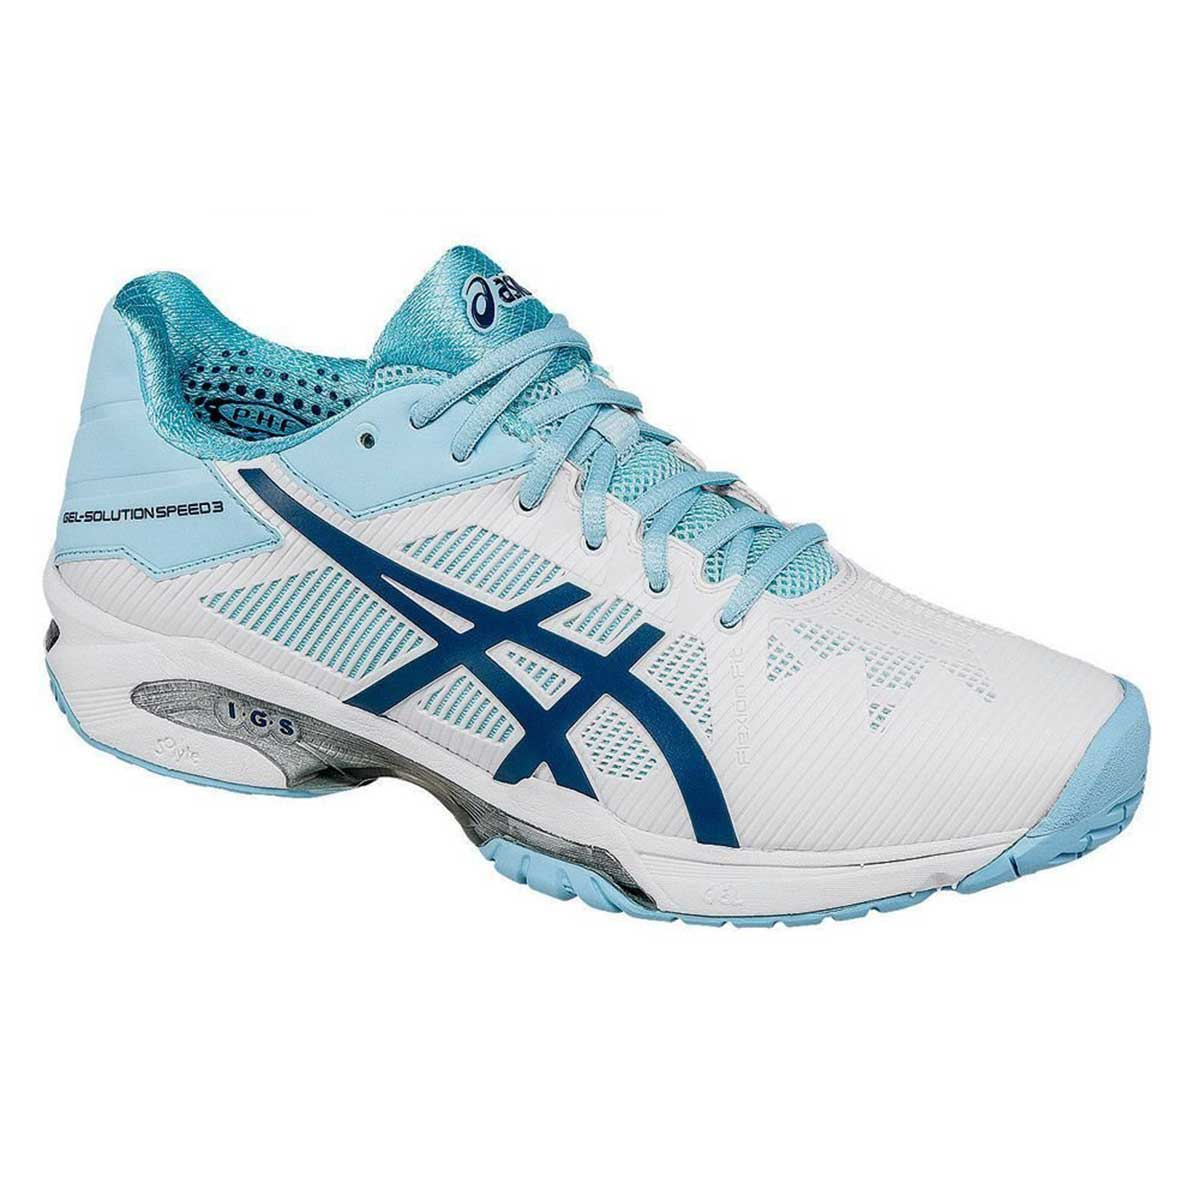 b4090d5a9f Buy Asics Gel Solution Speed 3 Women's Tennis Shoes (White/Blue) Online